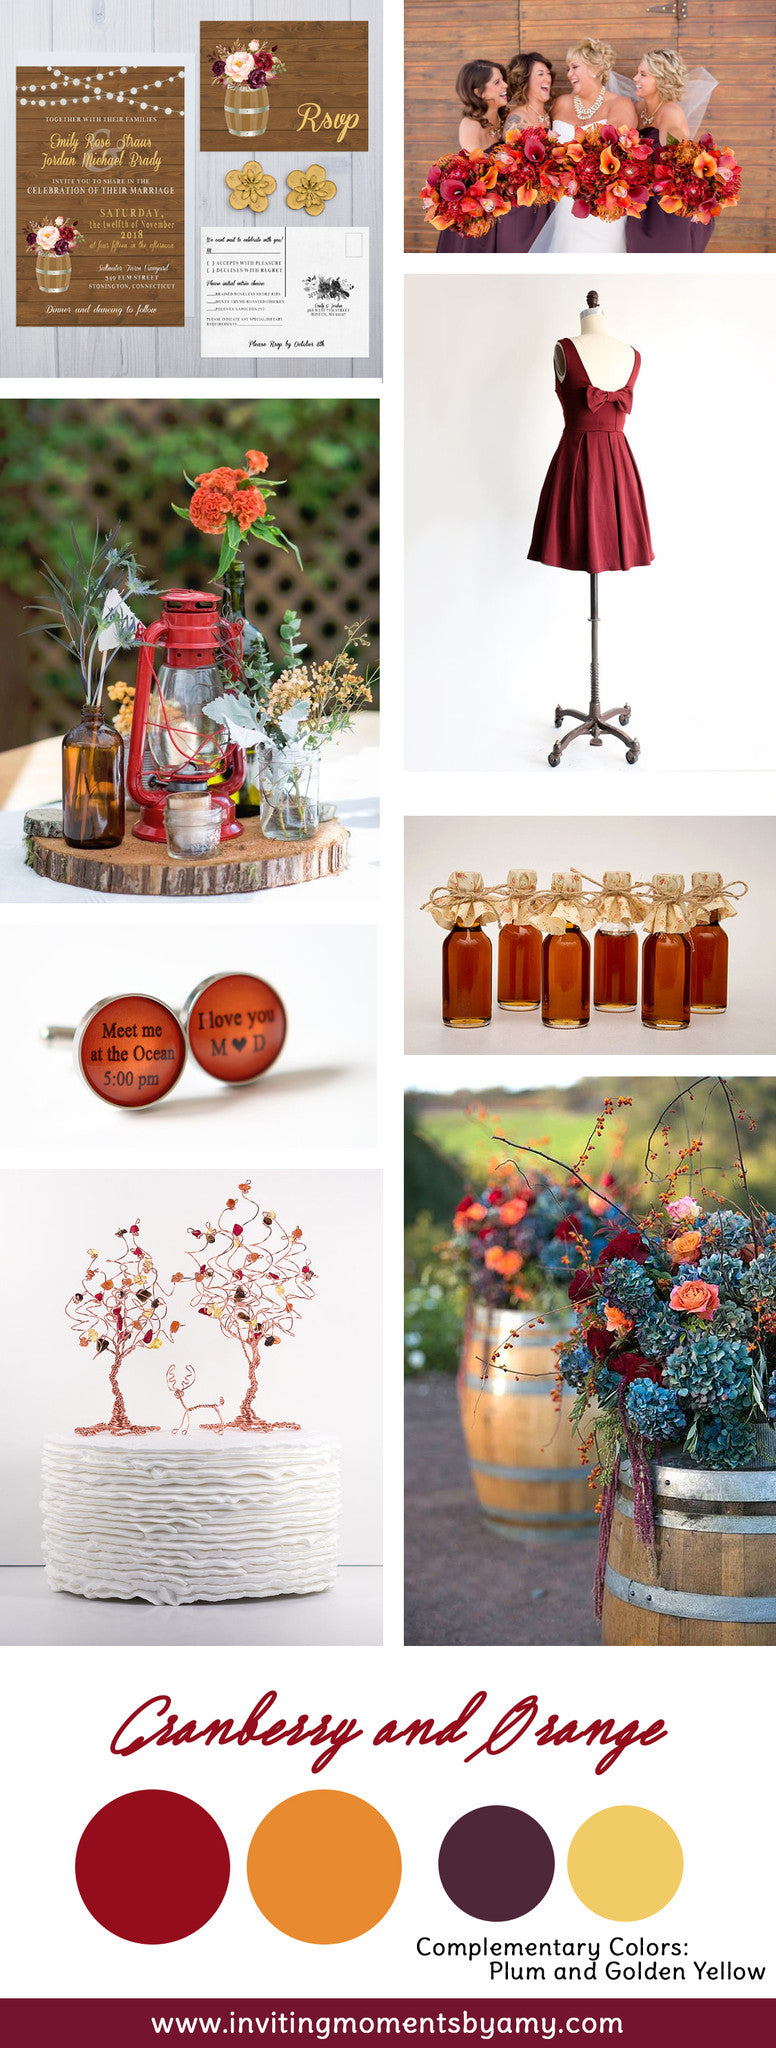 Cranberry and Orange Wedding Colors